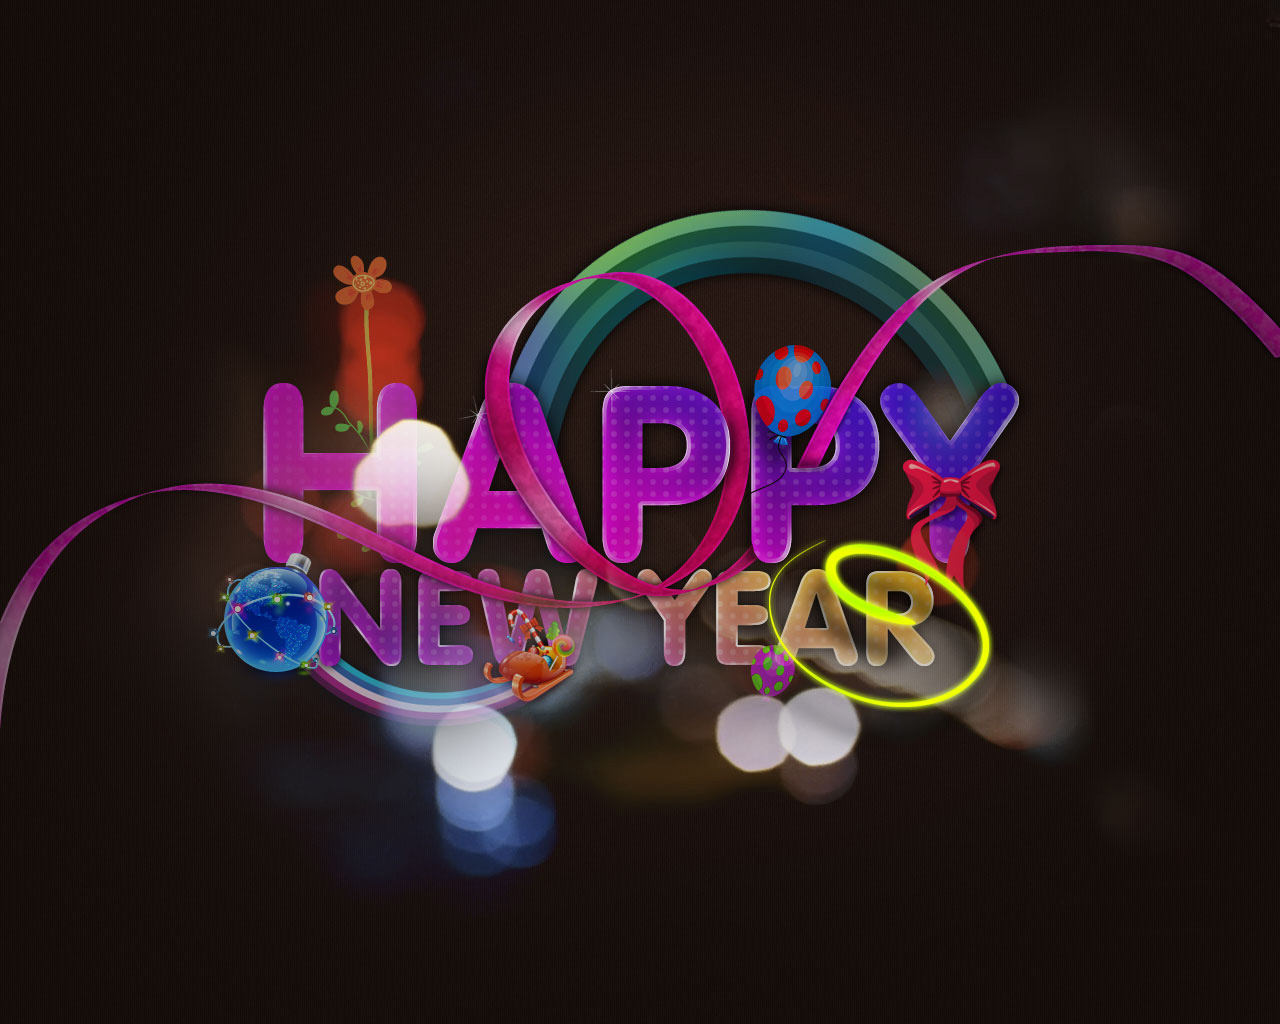 Happy New Year Cards. 1280 x 1024.Nhac Happy New Year 2014